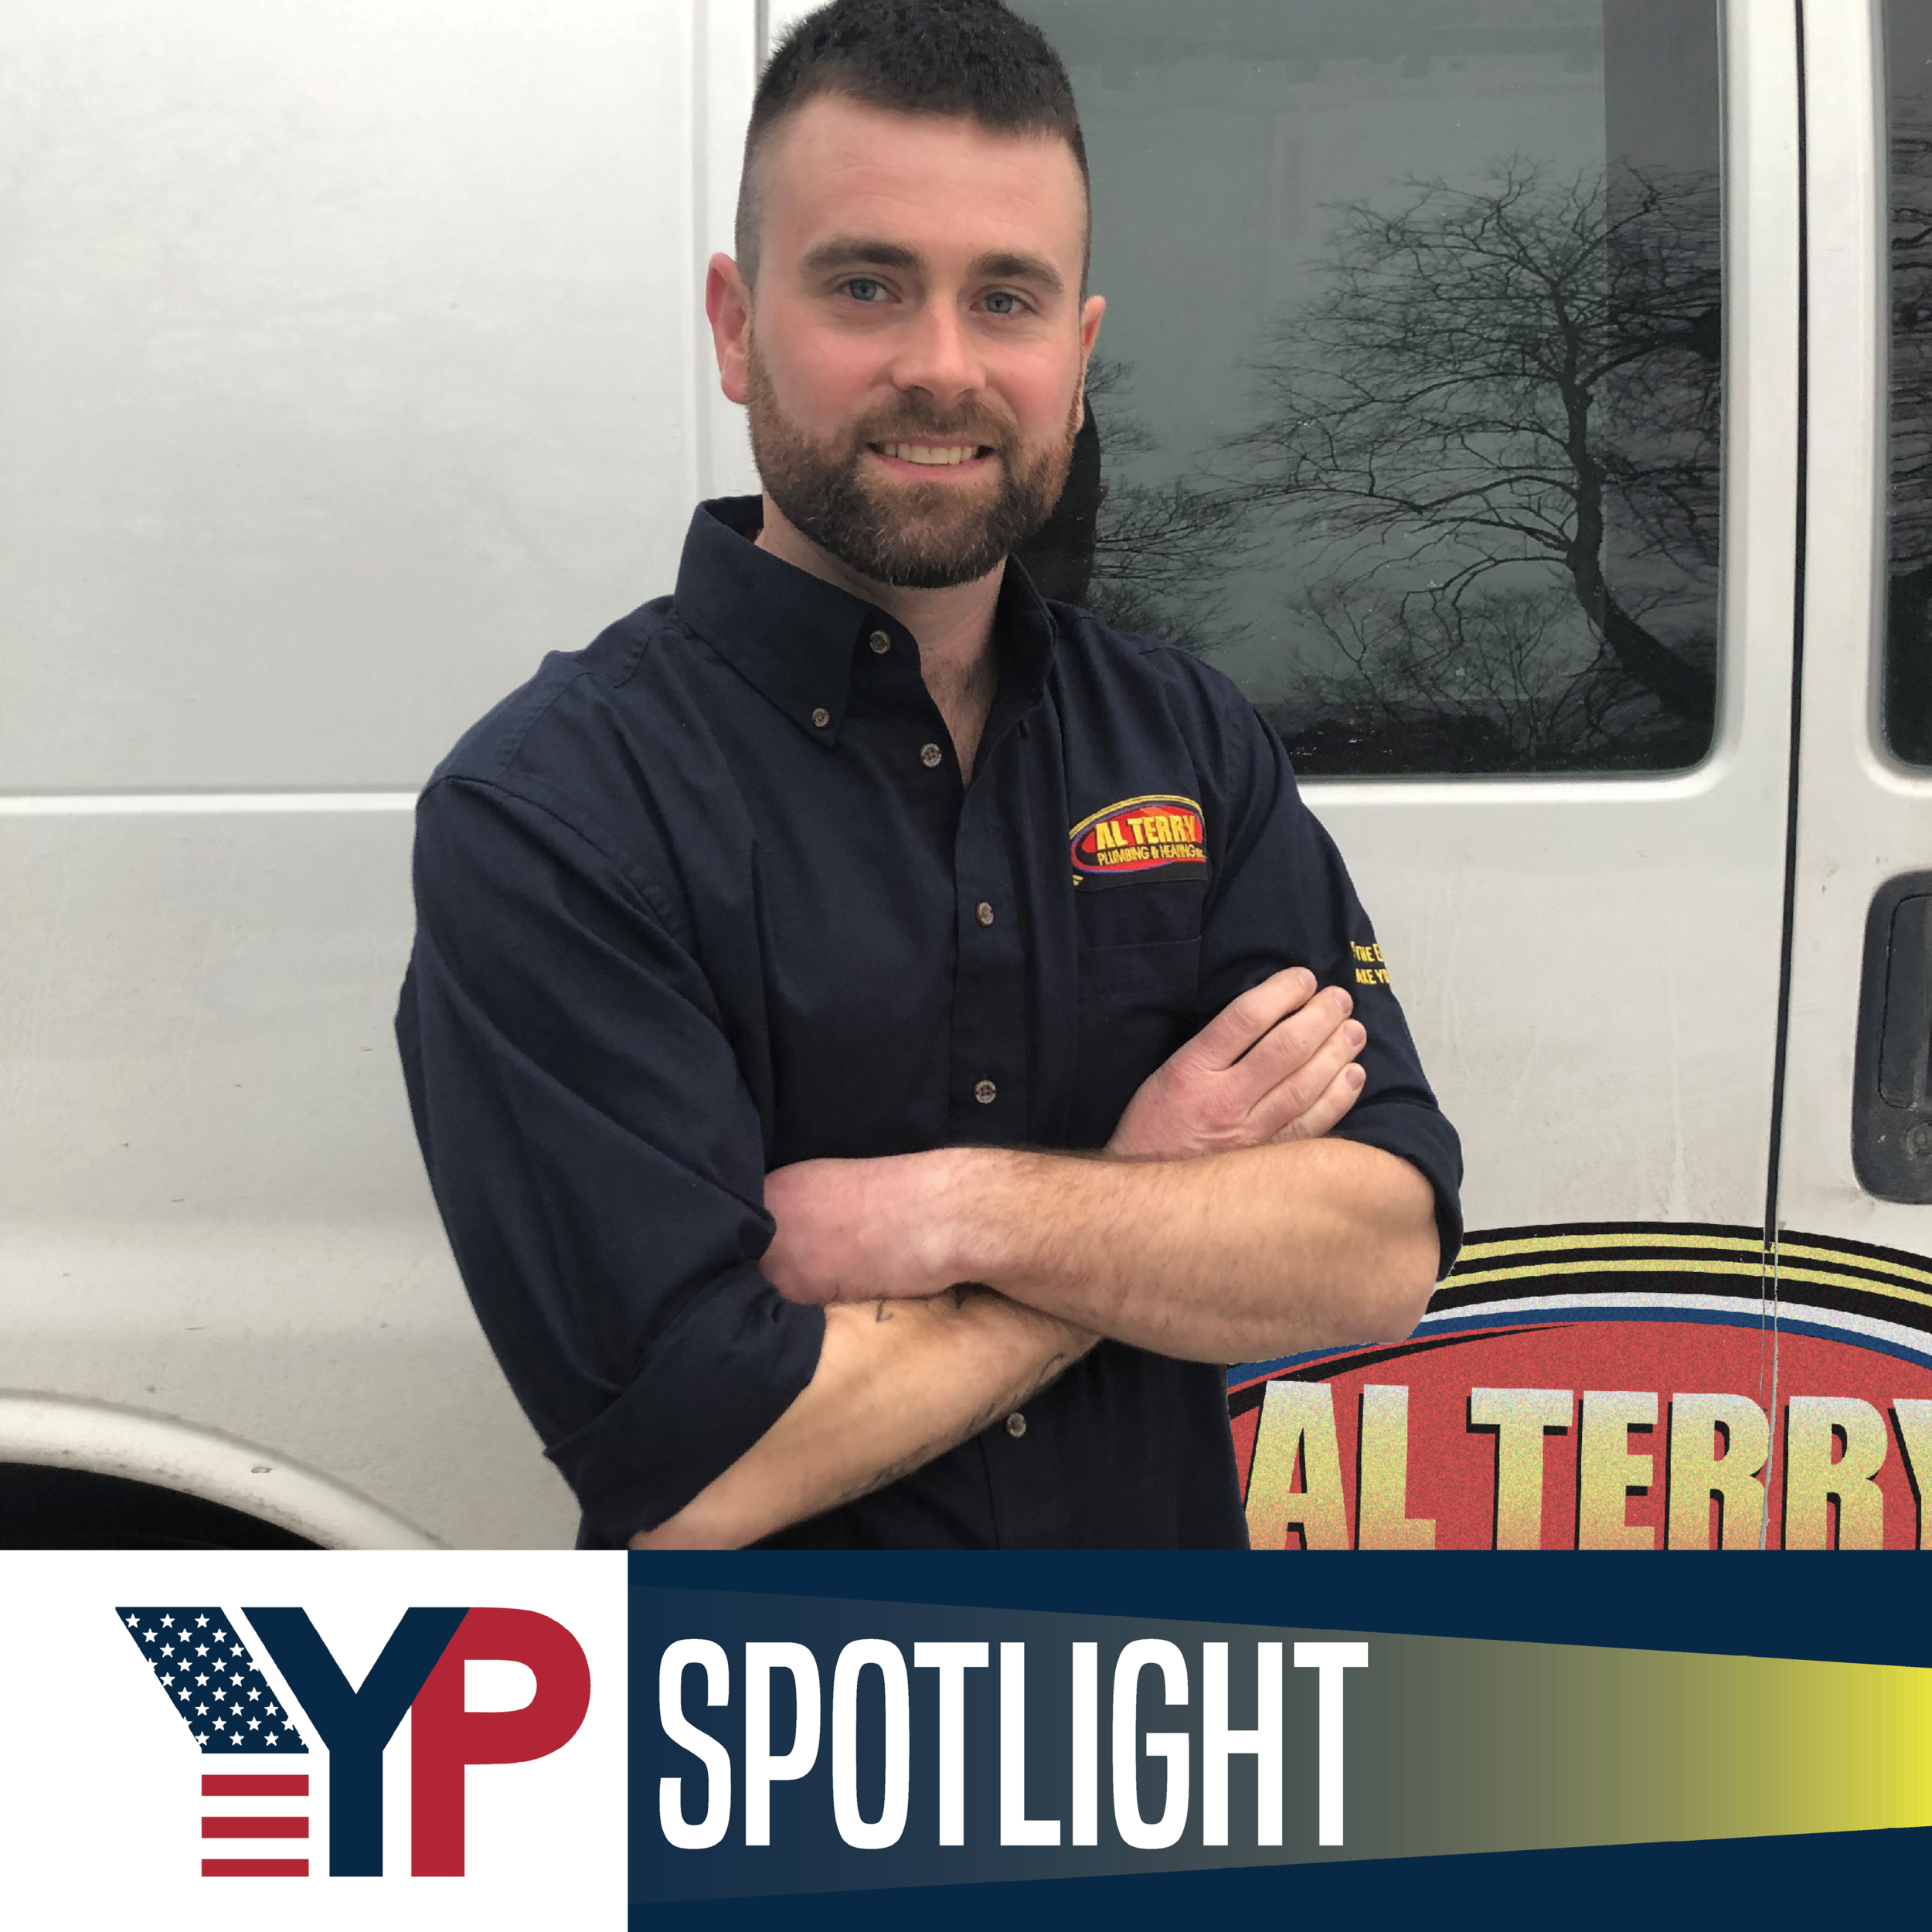 YP Spotlight - 2019-03 Rick Baron - Al Terry Plumbing & Heating.png